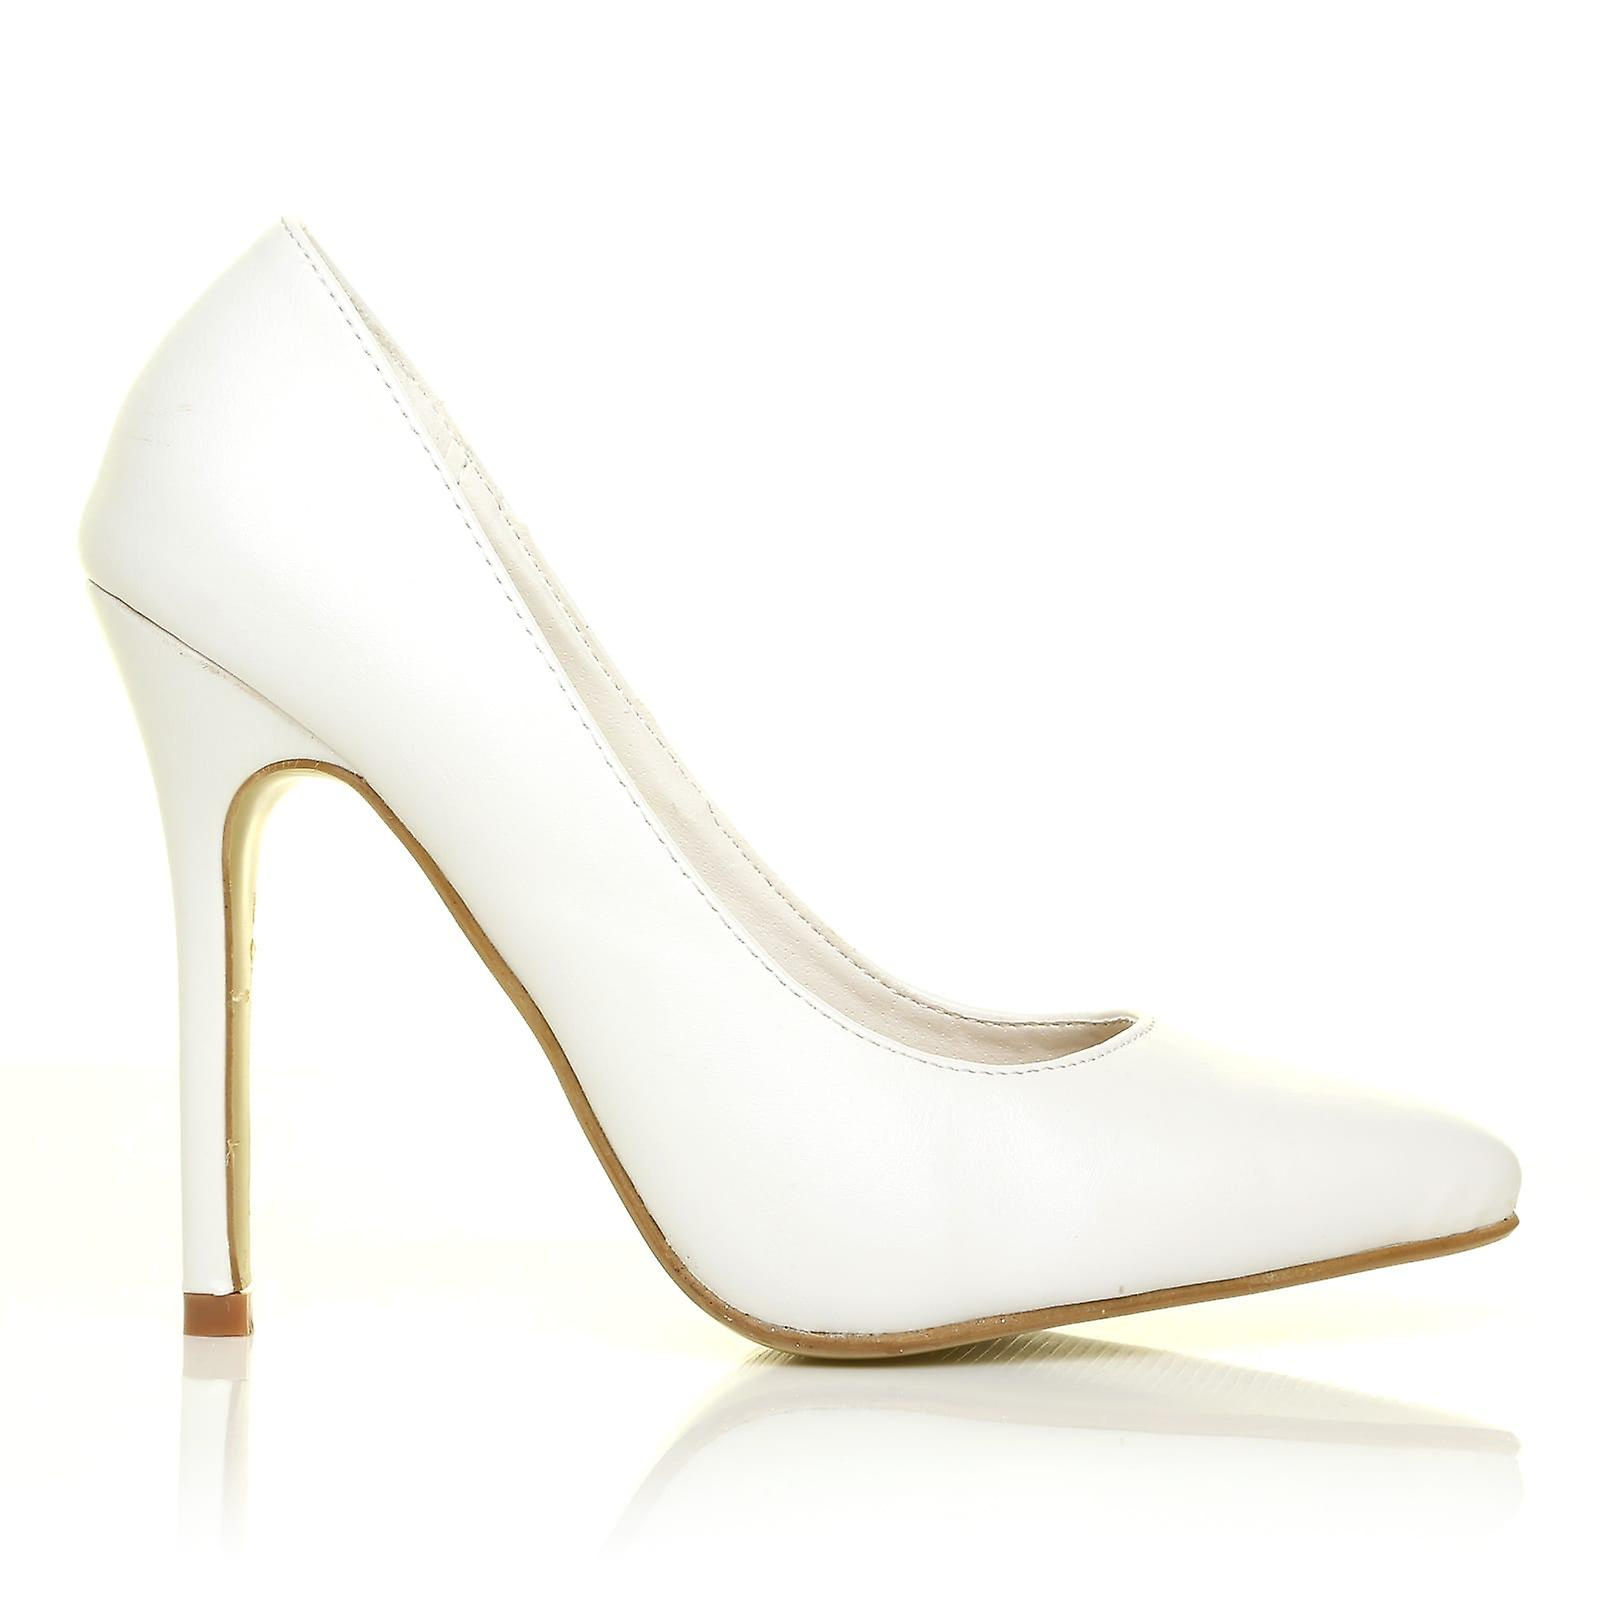 Toni White PU Synthetic Leather Pointed Toe Toe Pointed Court Shoes 876351